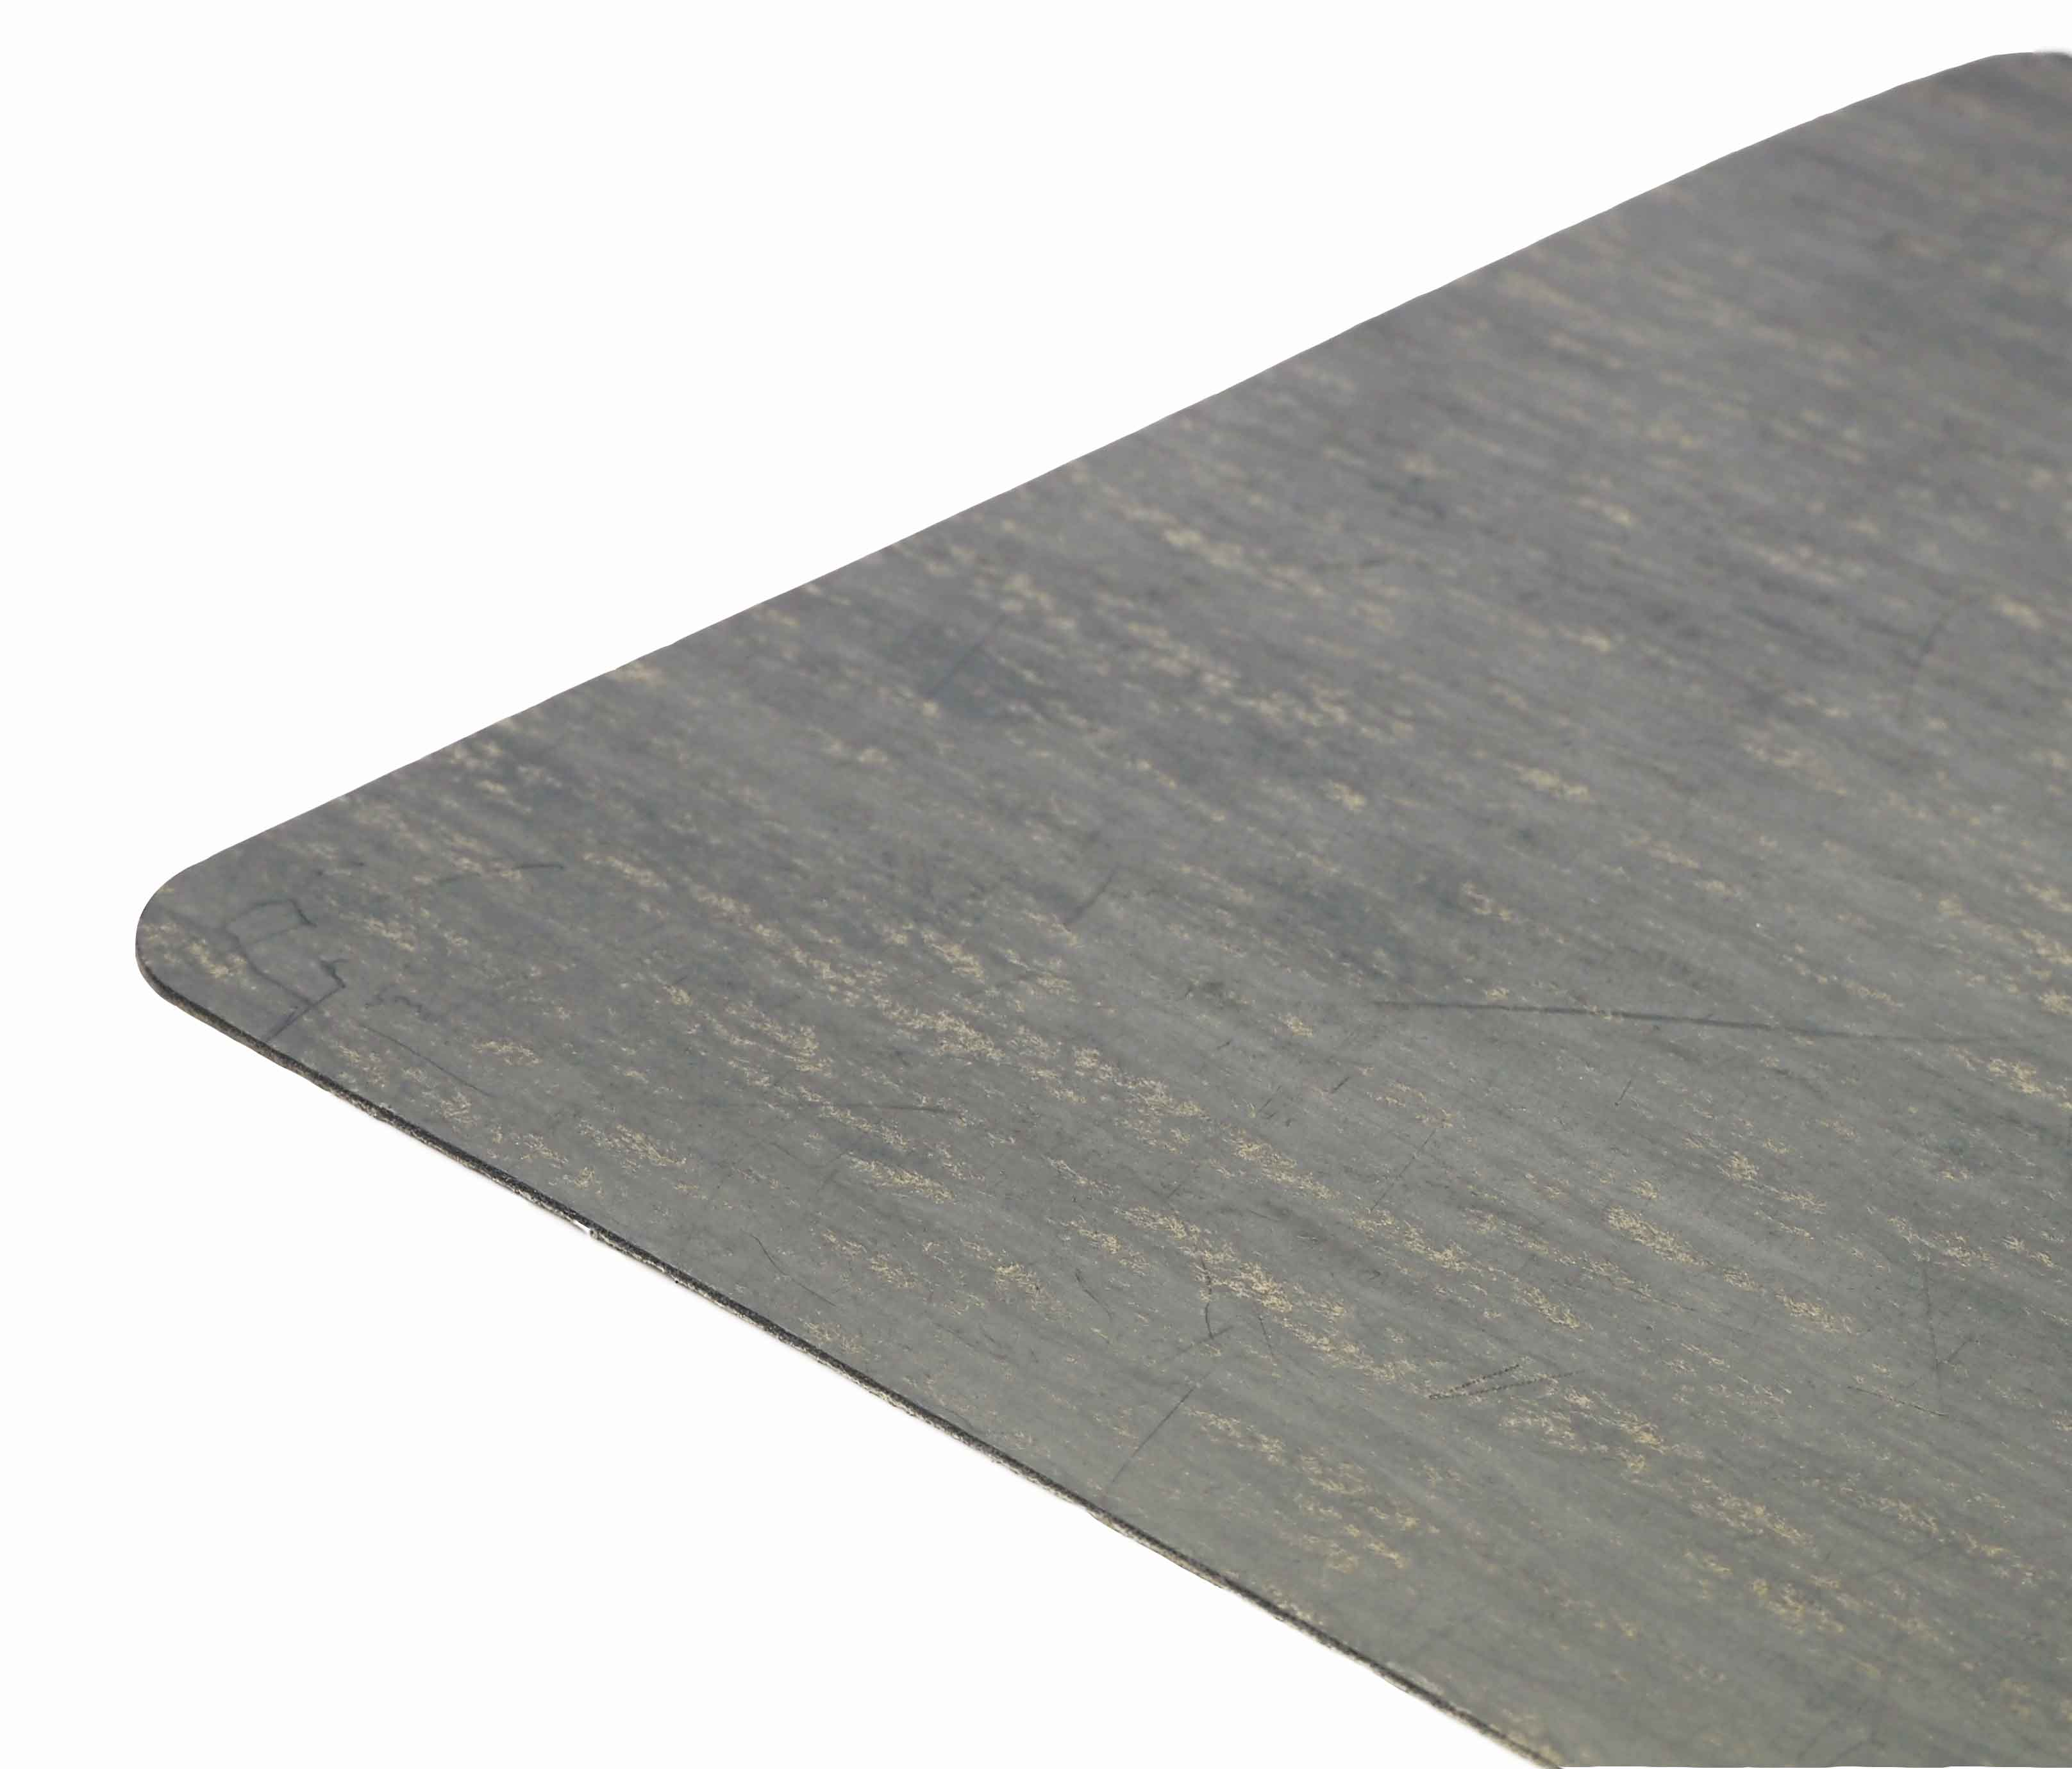 J303 Tang Reinforced Exfoliated Graphite Jointing Sheet